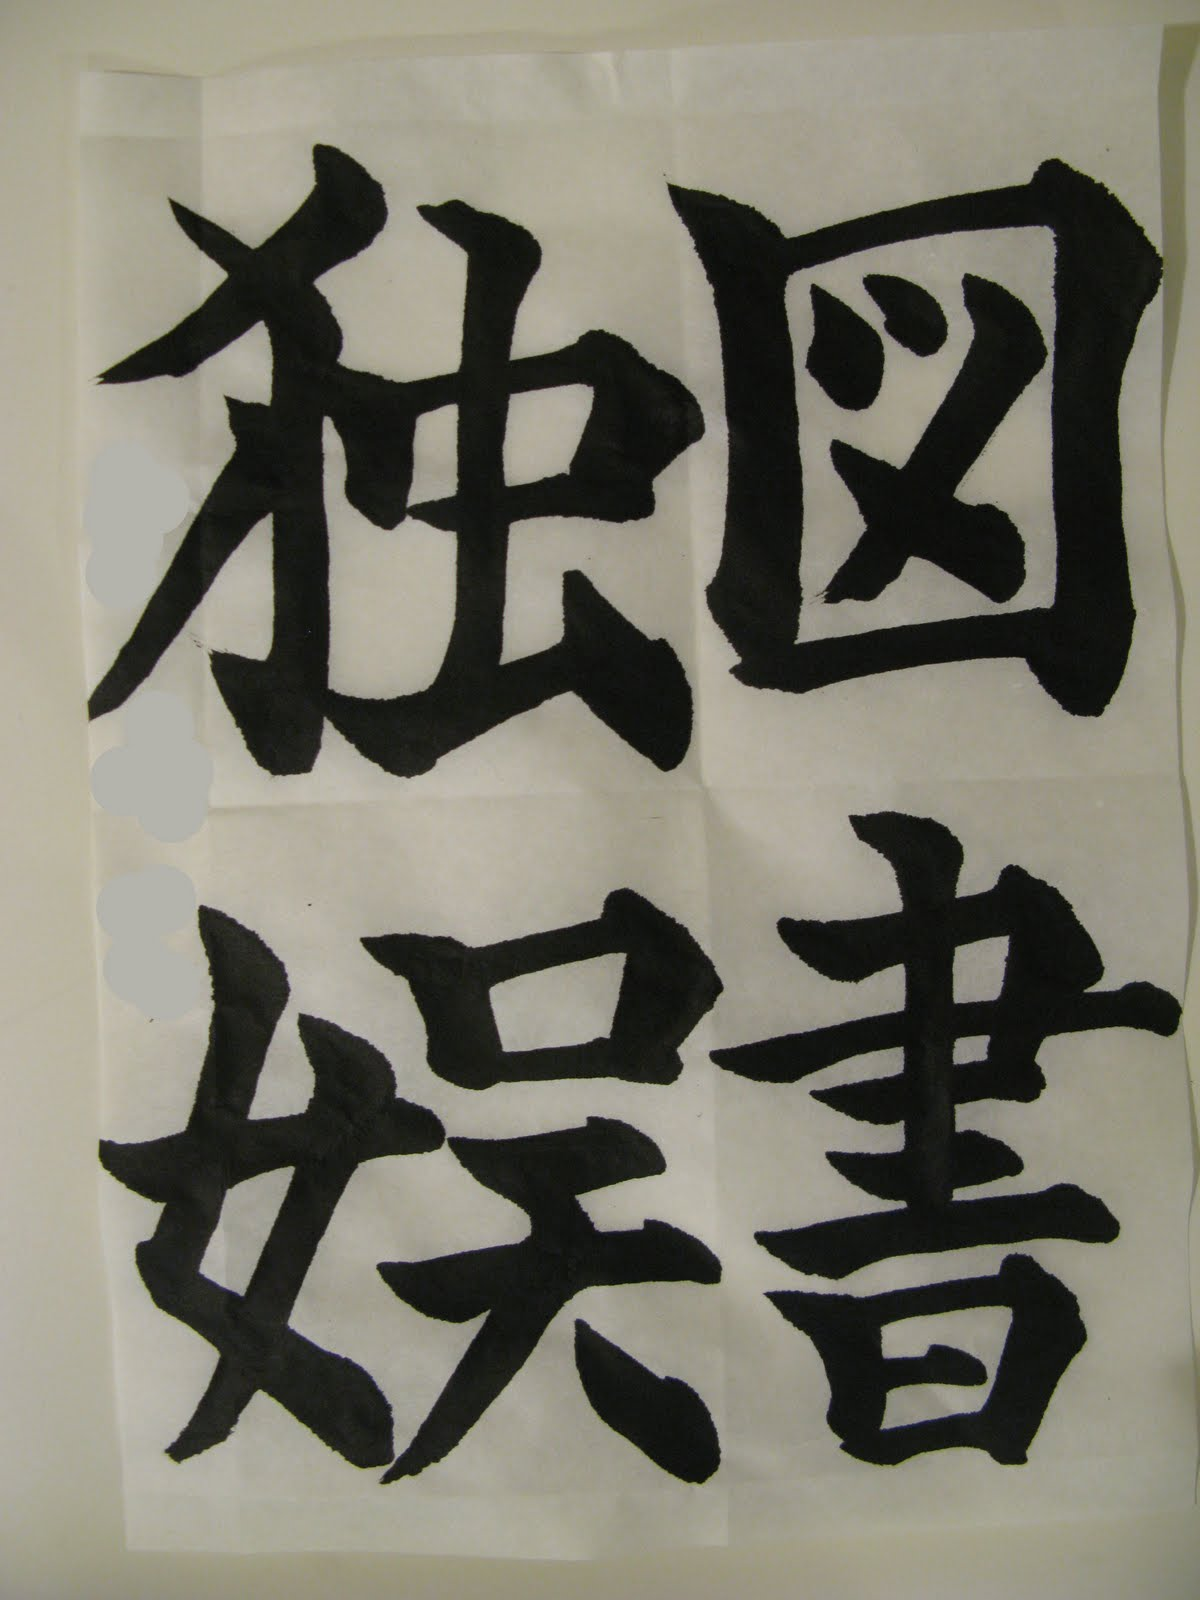 Japanese Symbol for Strength and Courage